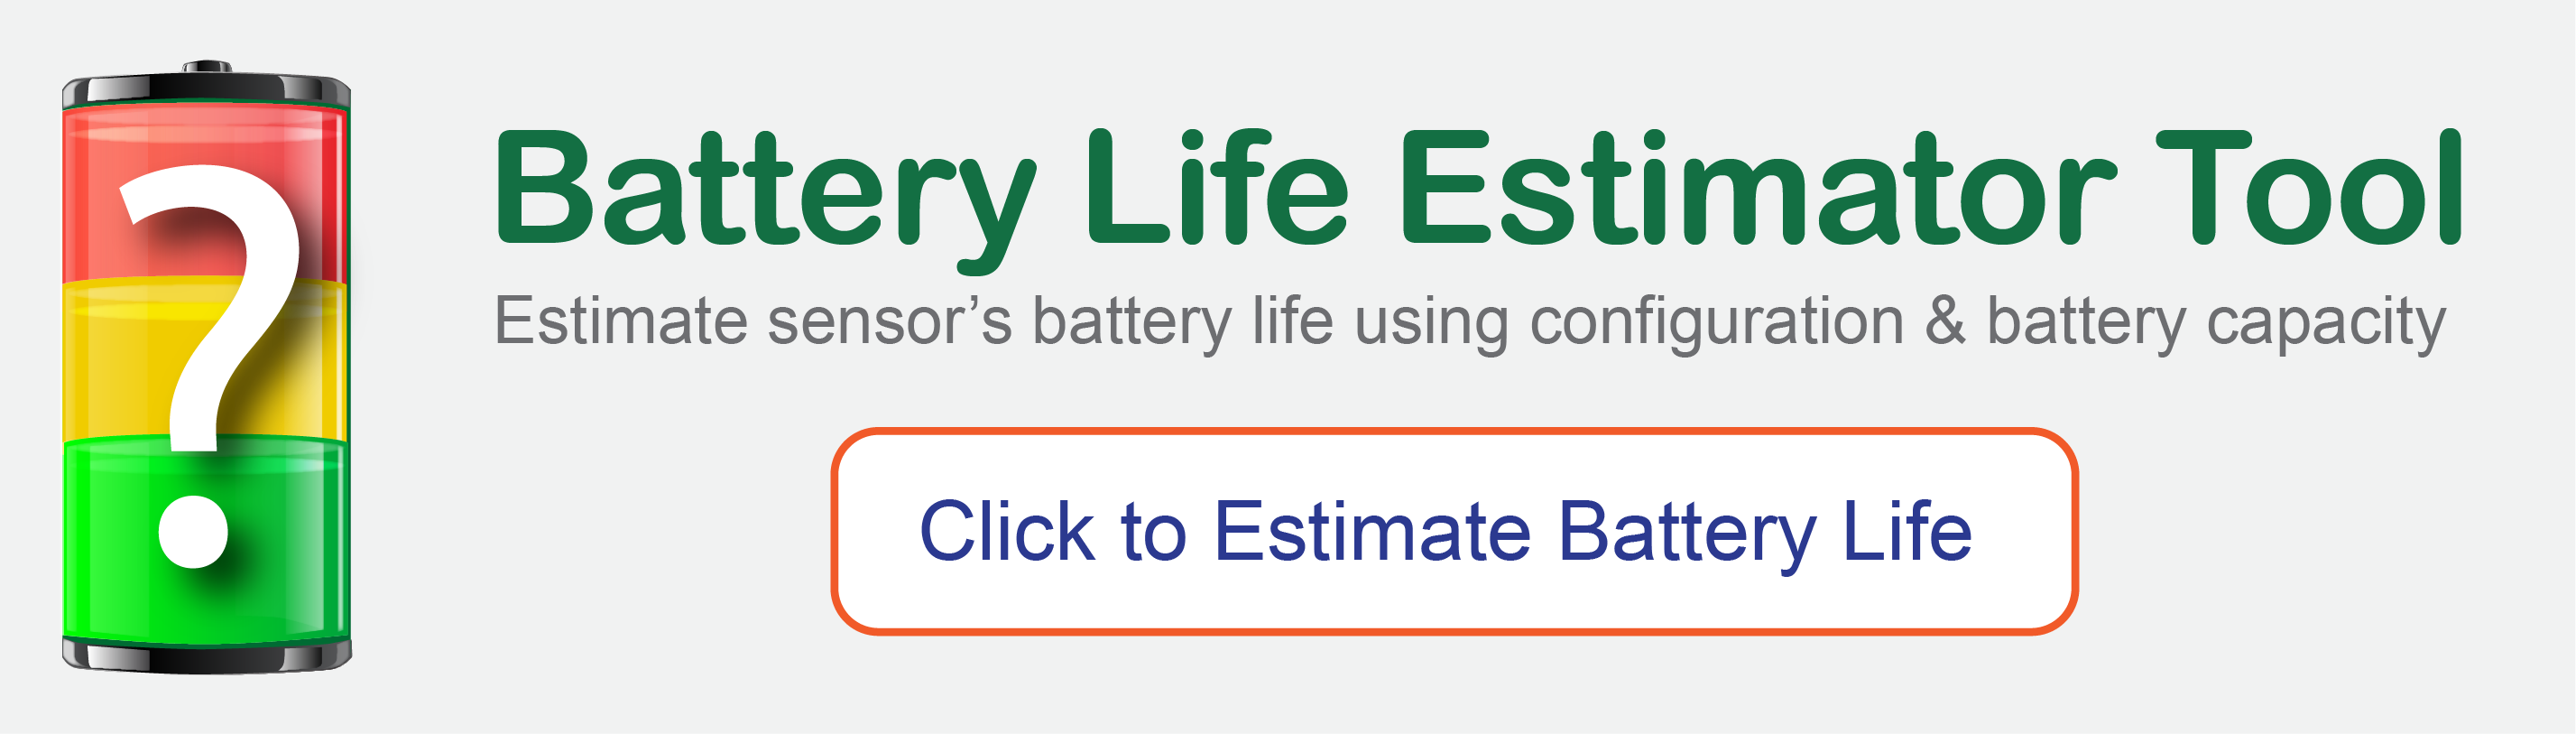 Open battery life calculator